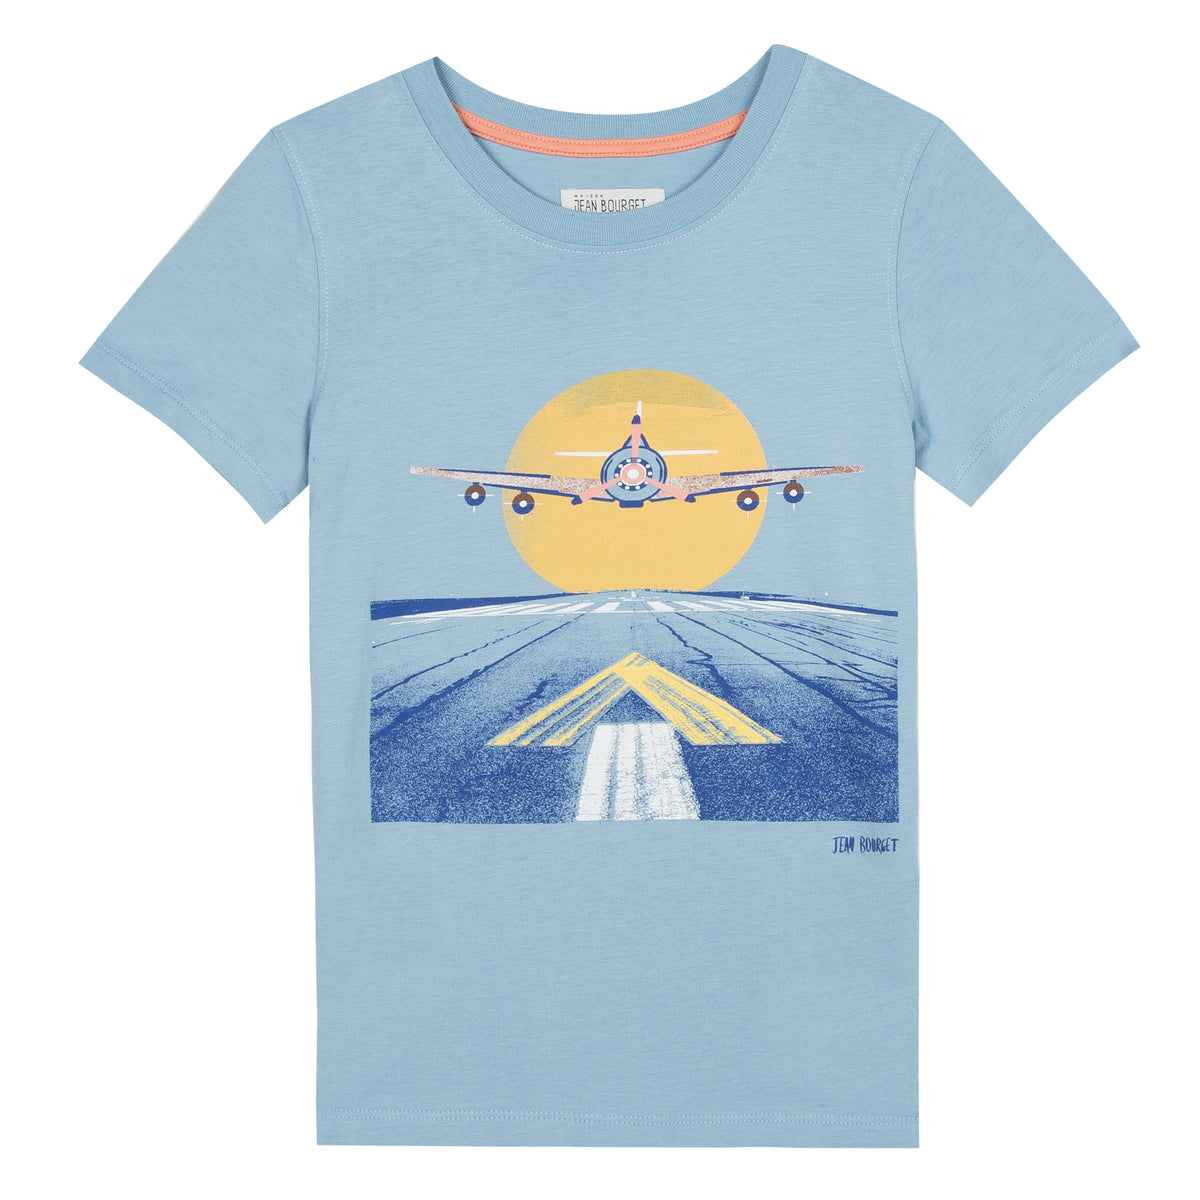 Fun and graphic, this short-sleeved tee-shirt in mint green cotton jersey is screen printed with a wave photo of an airplane getting ready for landing. Designed by Jean Bourget.